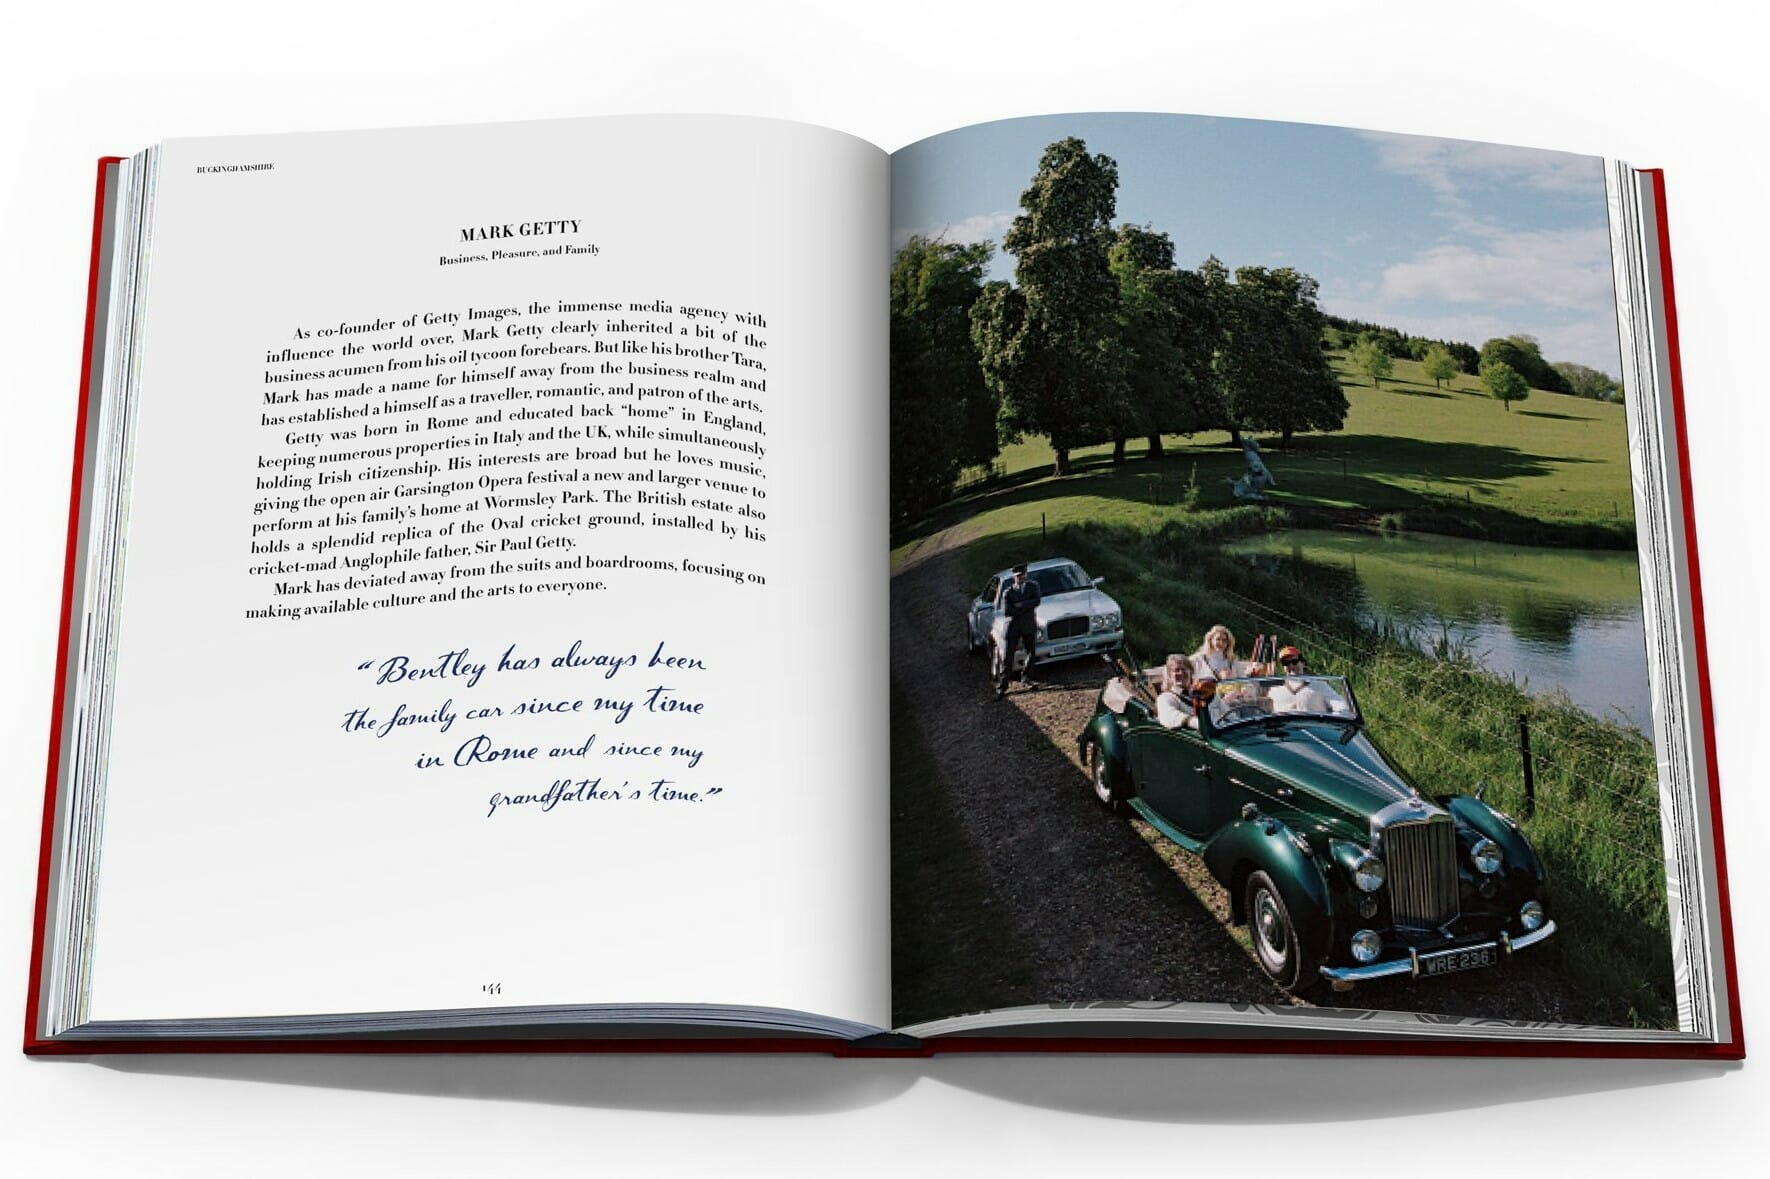 Taschen coffee table book on Bentley automobiles